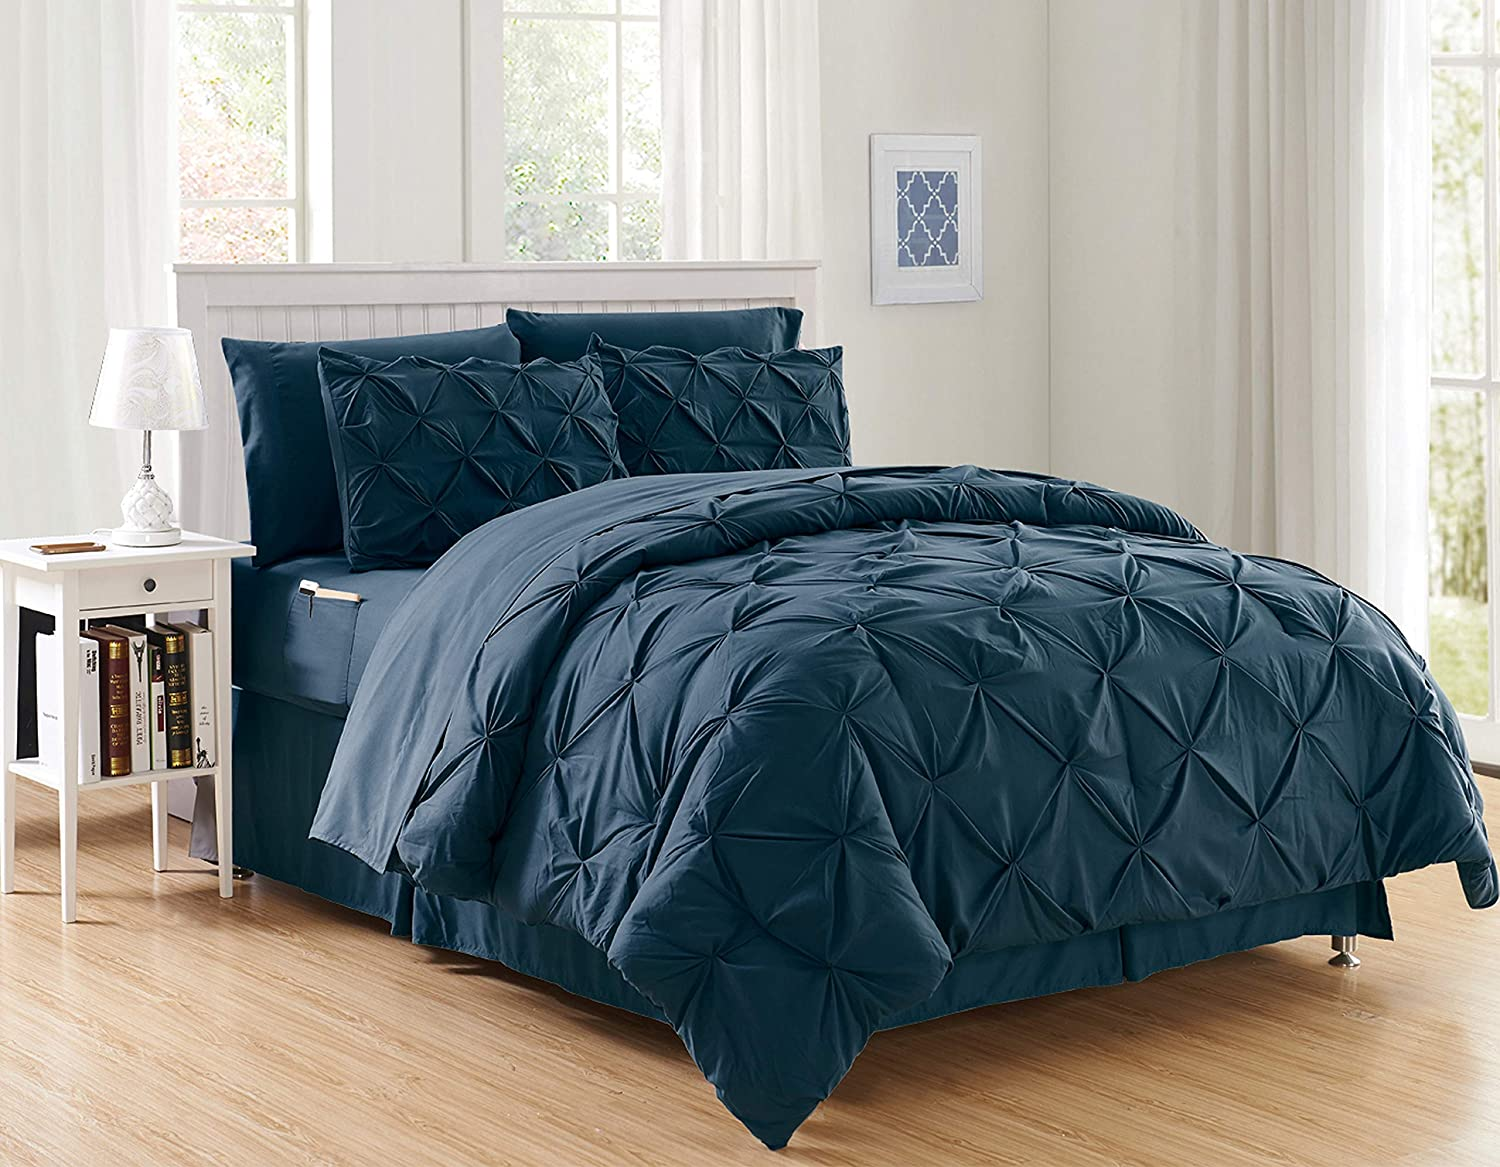 Luxury Best, Softest, Coziest 6-Piece Bed-in-a-Bag Comforter Set on Amazon! Elegant Comfort - Silky Soft Complete Set Includes Bed Sheet Set with Double Sided Storage Pockets, Twin/Twin XL, Navy Blue